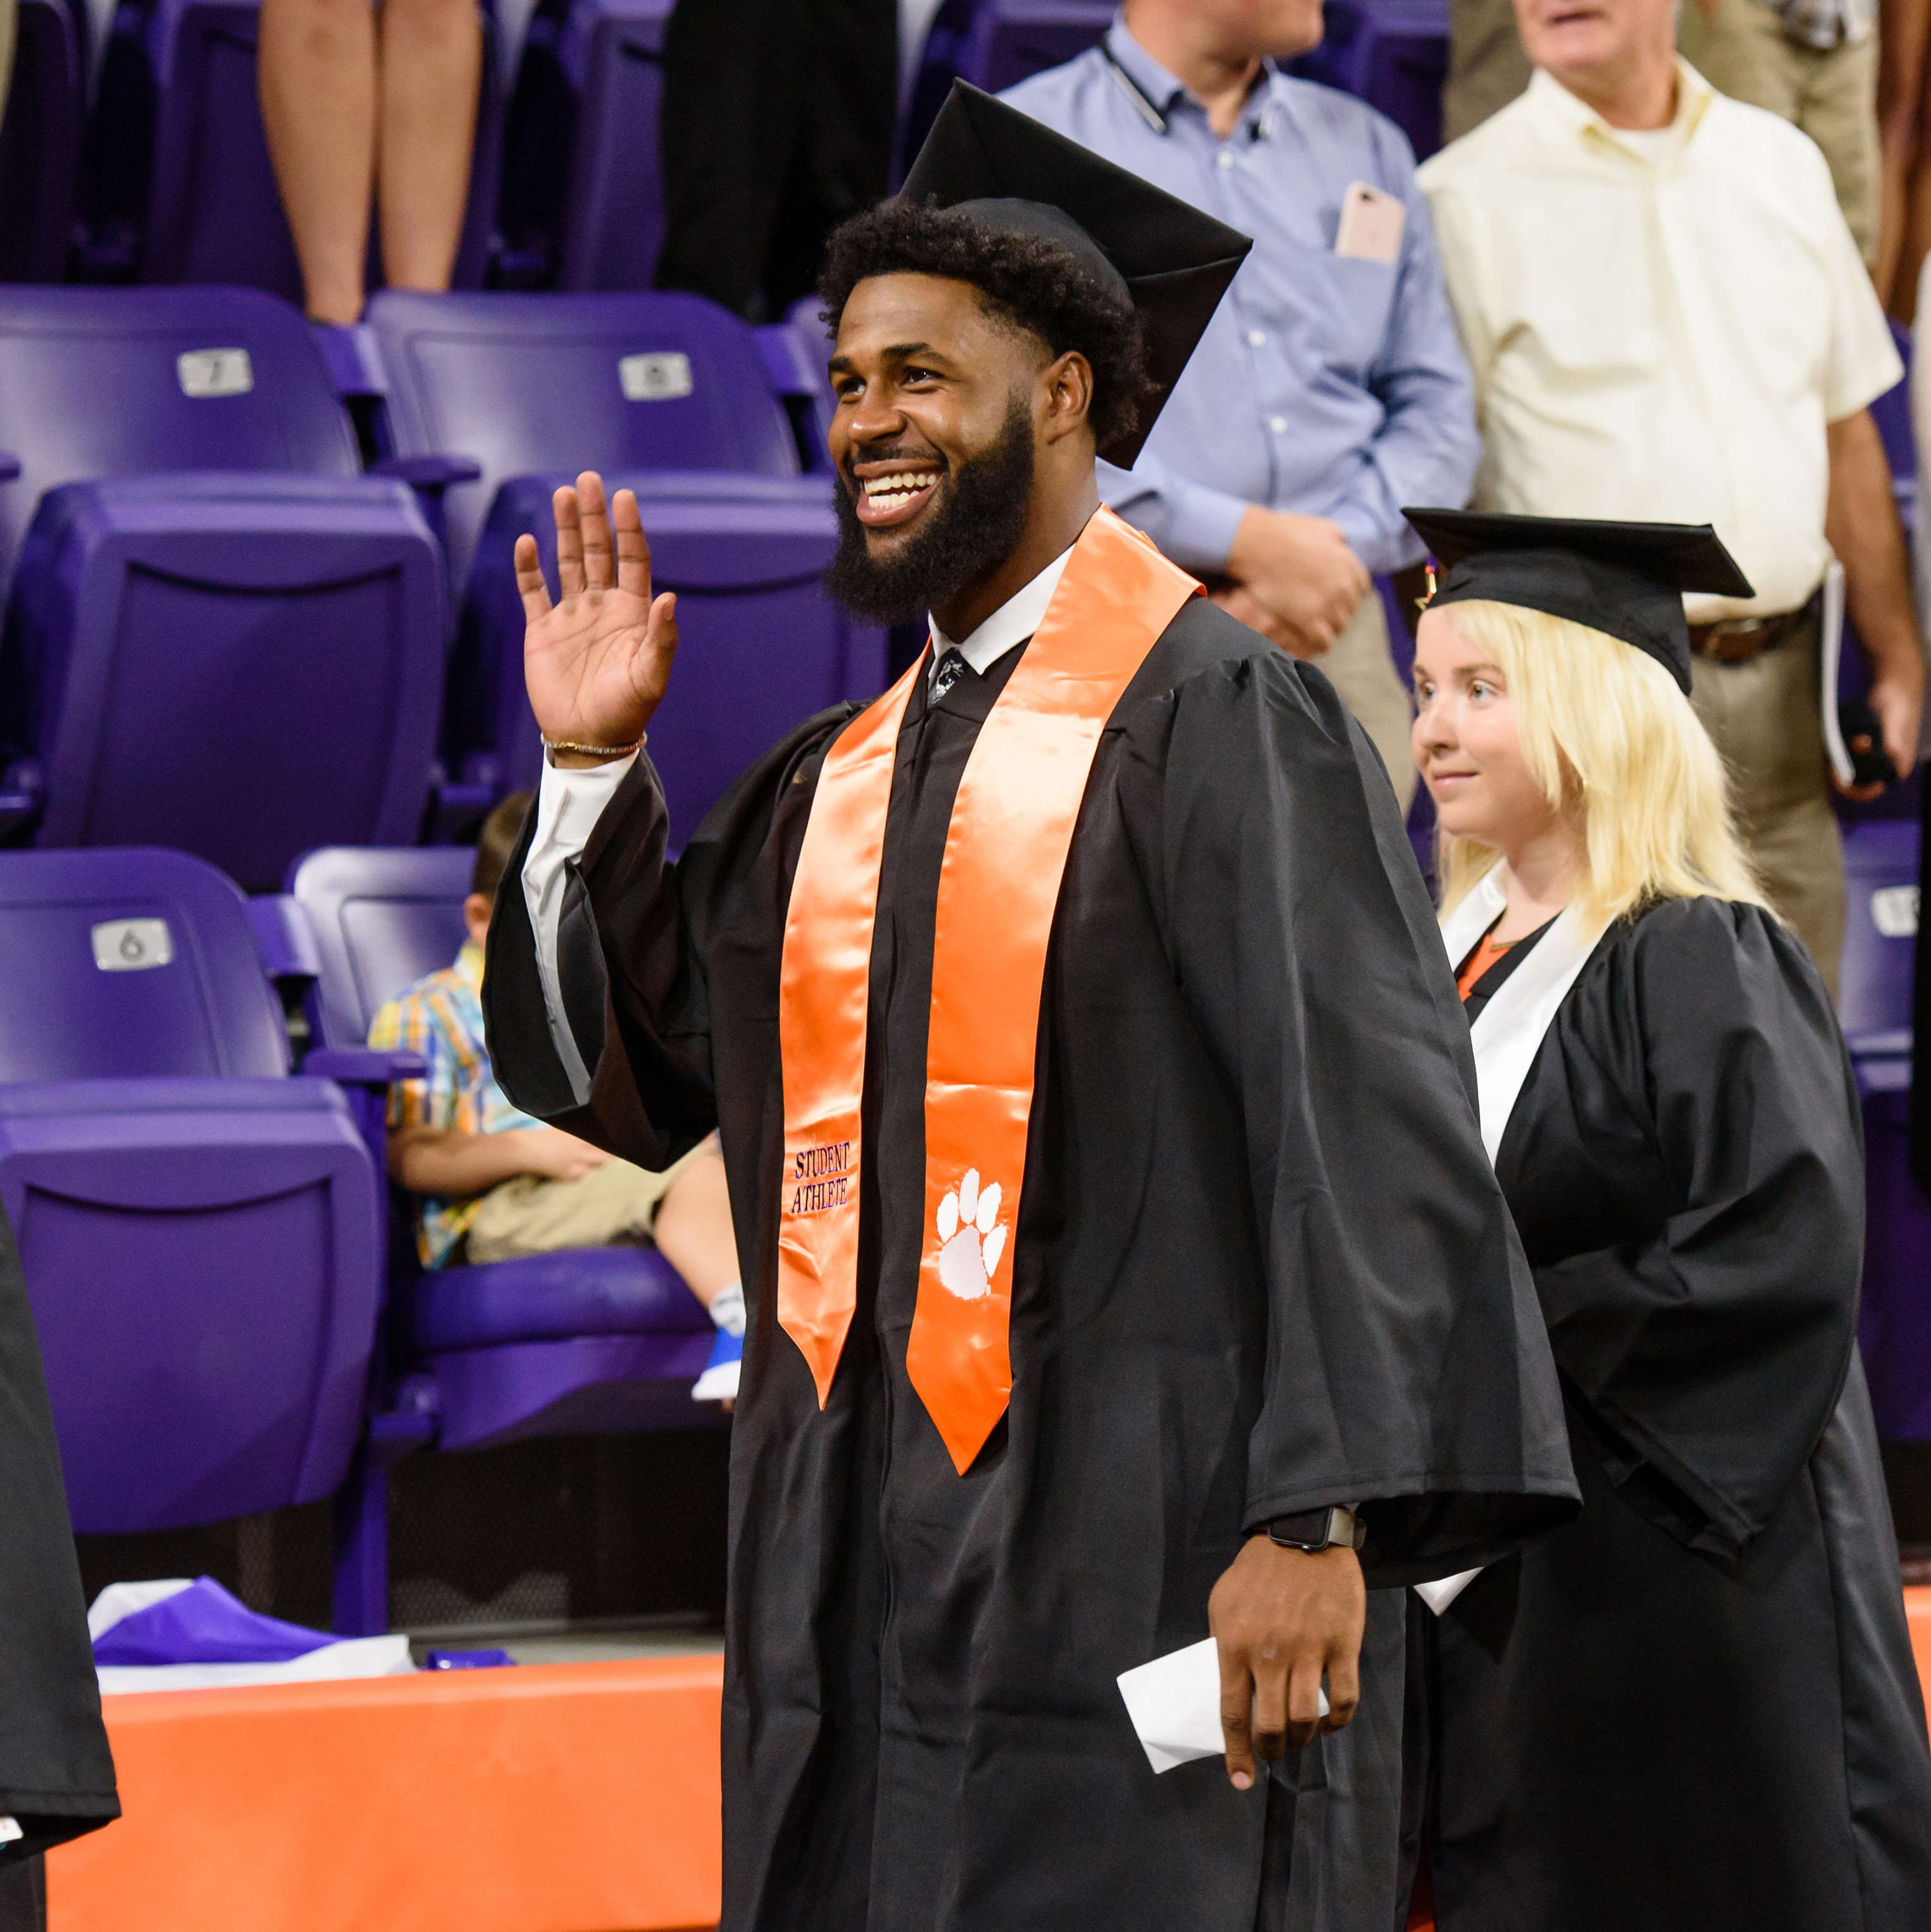 O'Daniel, Crowder and Falcinelli Earn Degrees on Friday